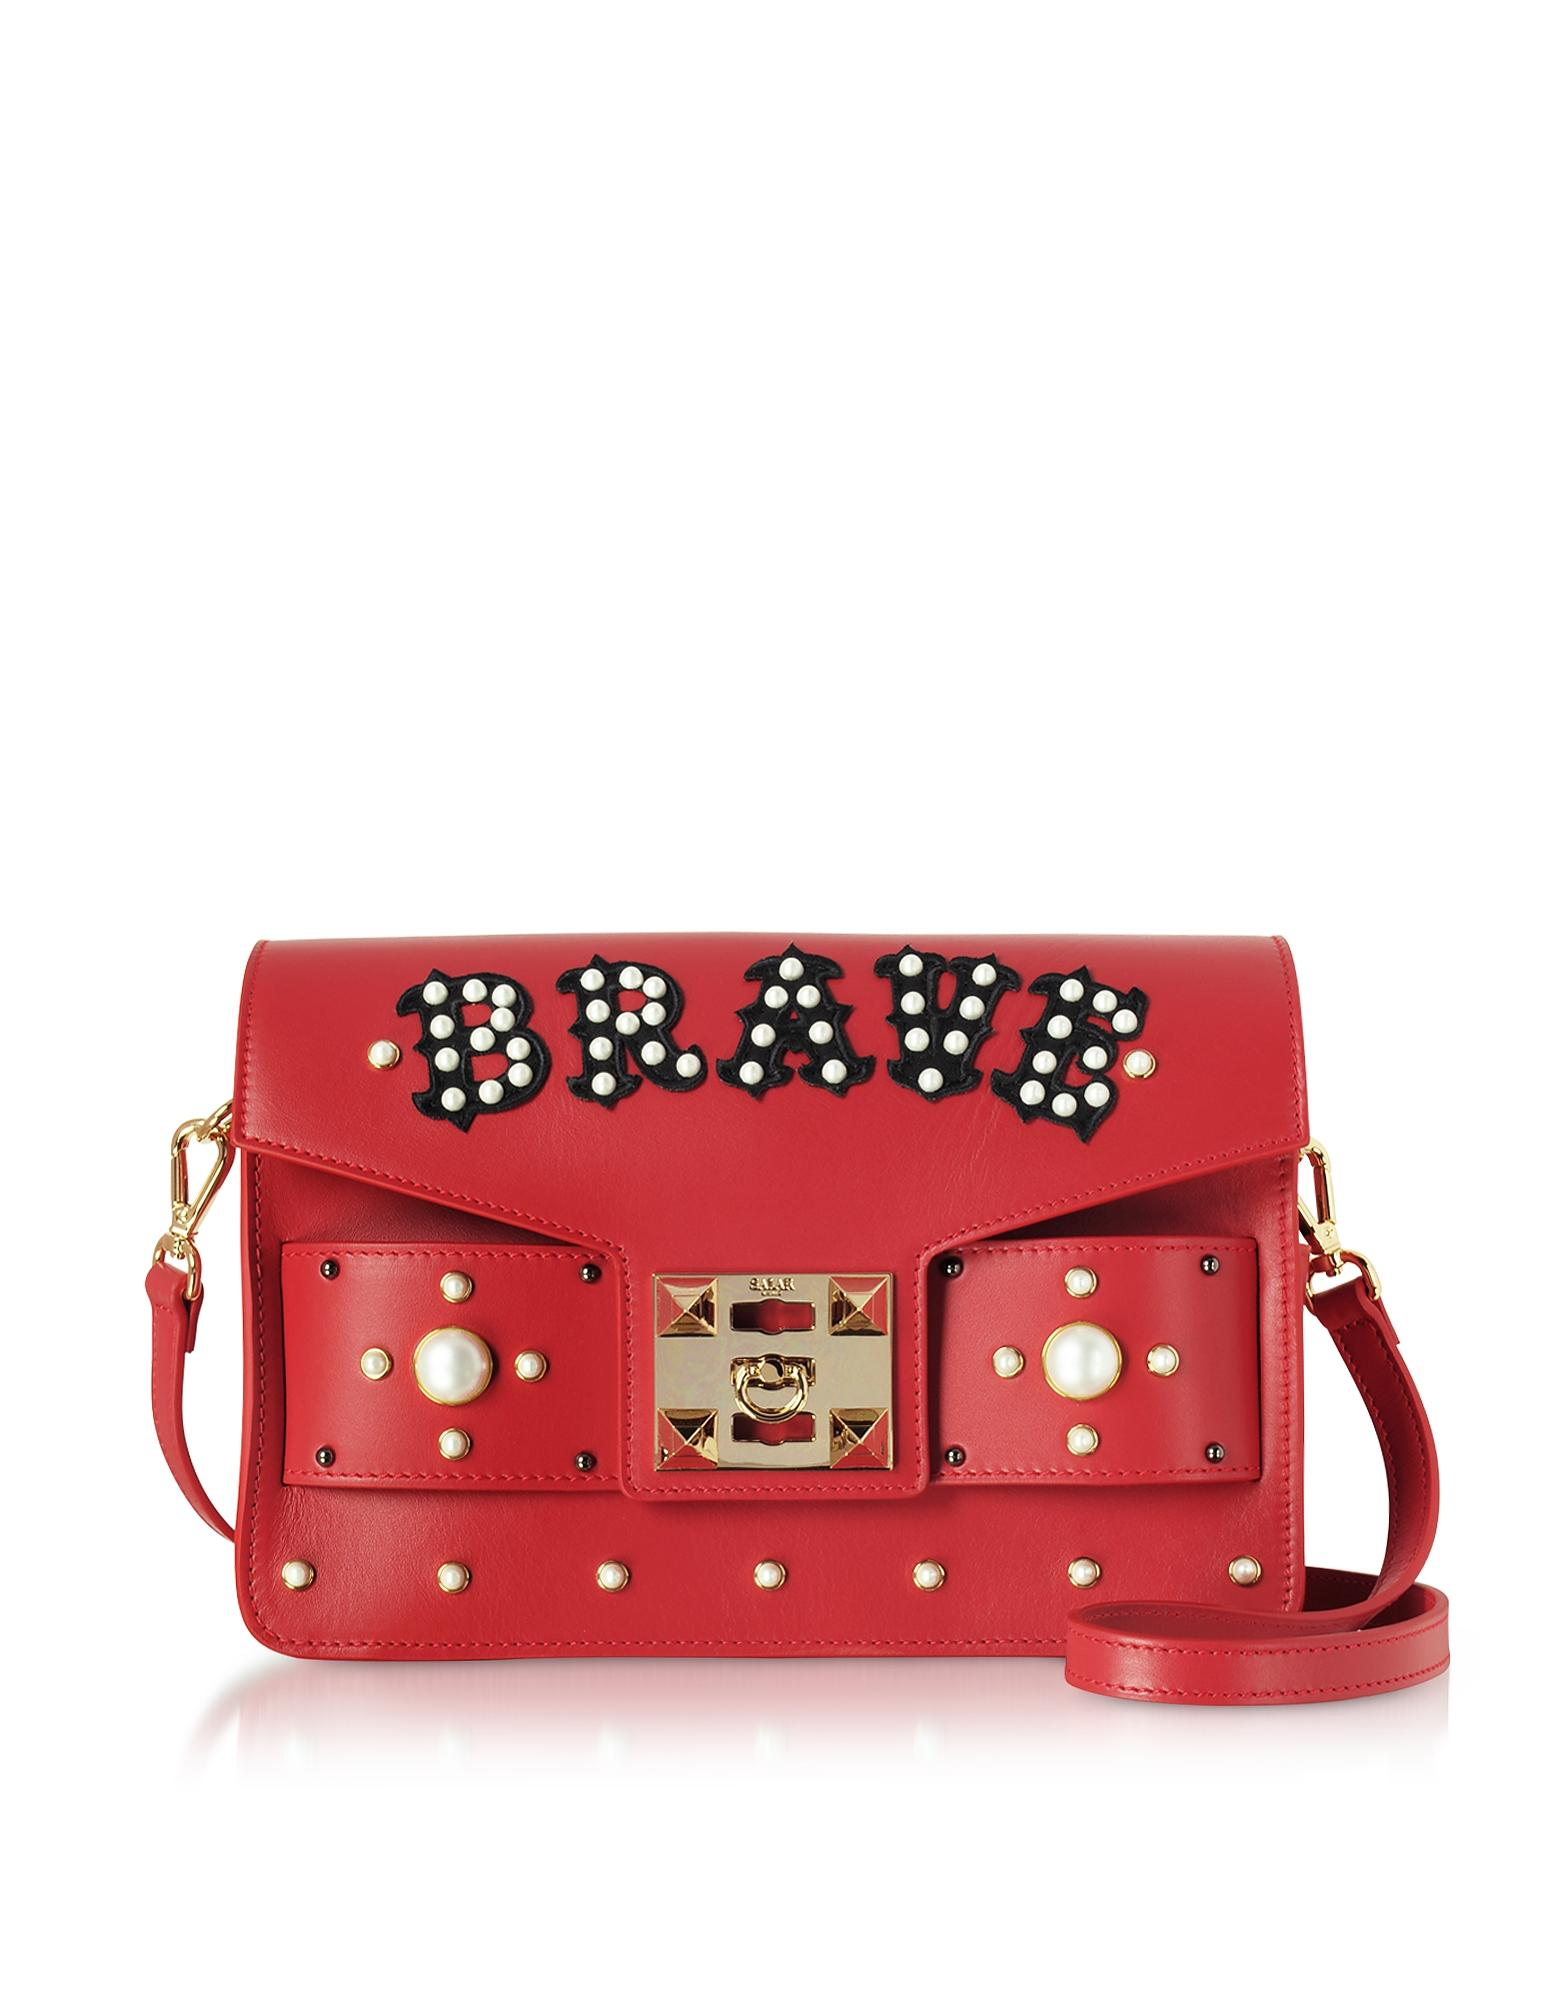 Salar Ana Brave Leather Shoulder Bag